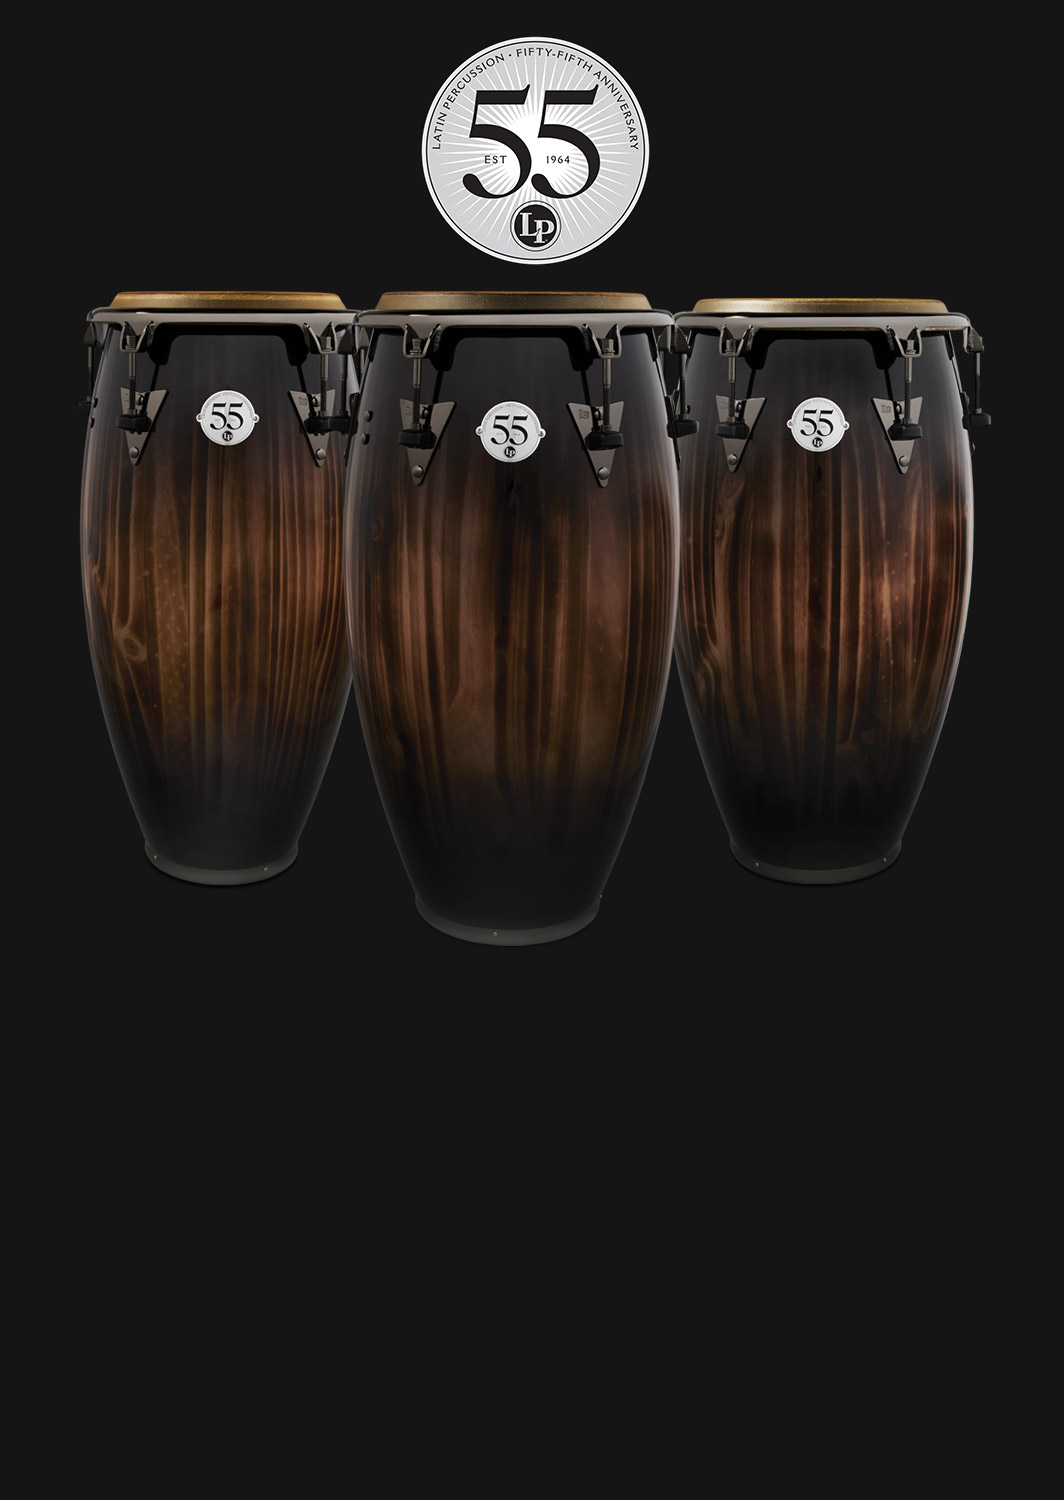 55th Anniversary Congas